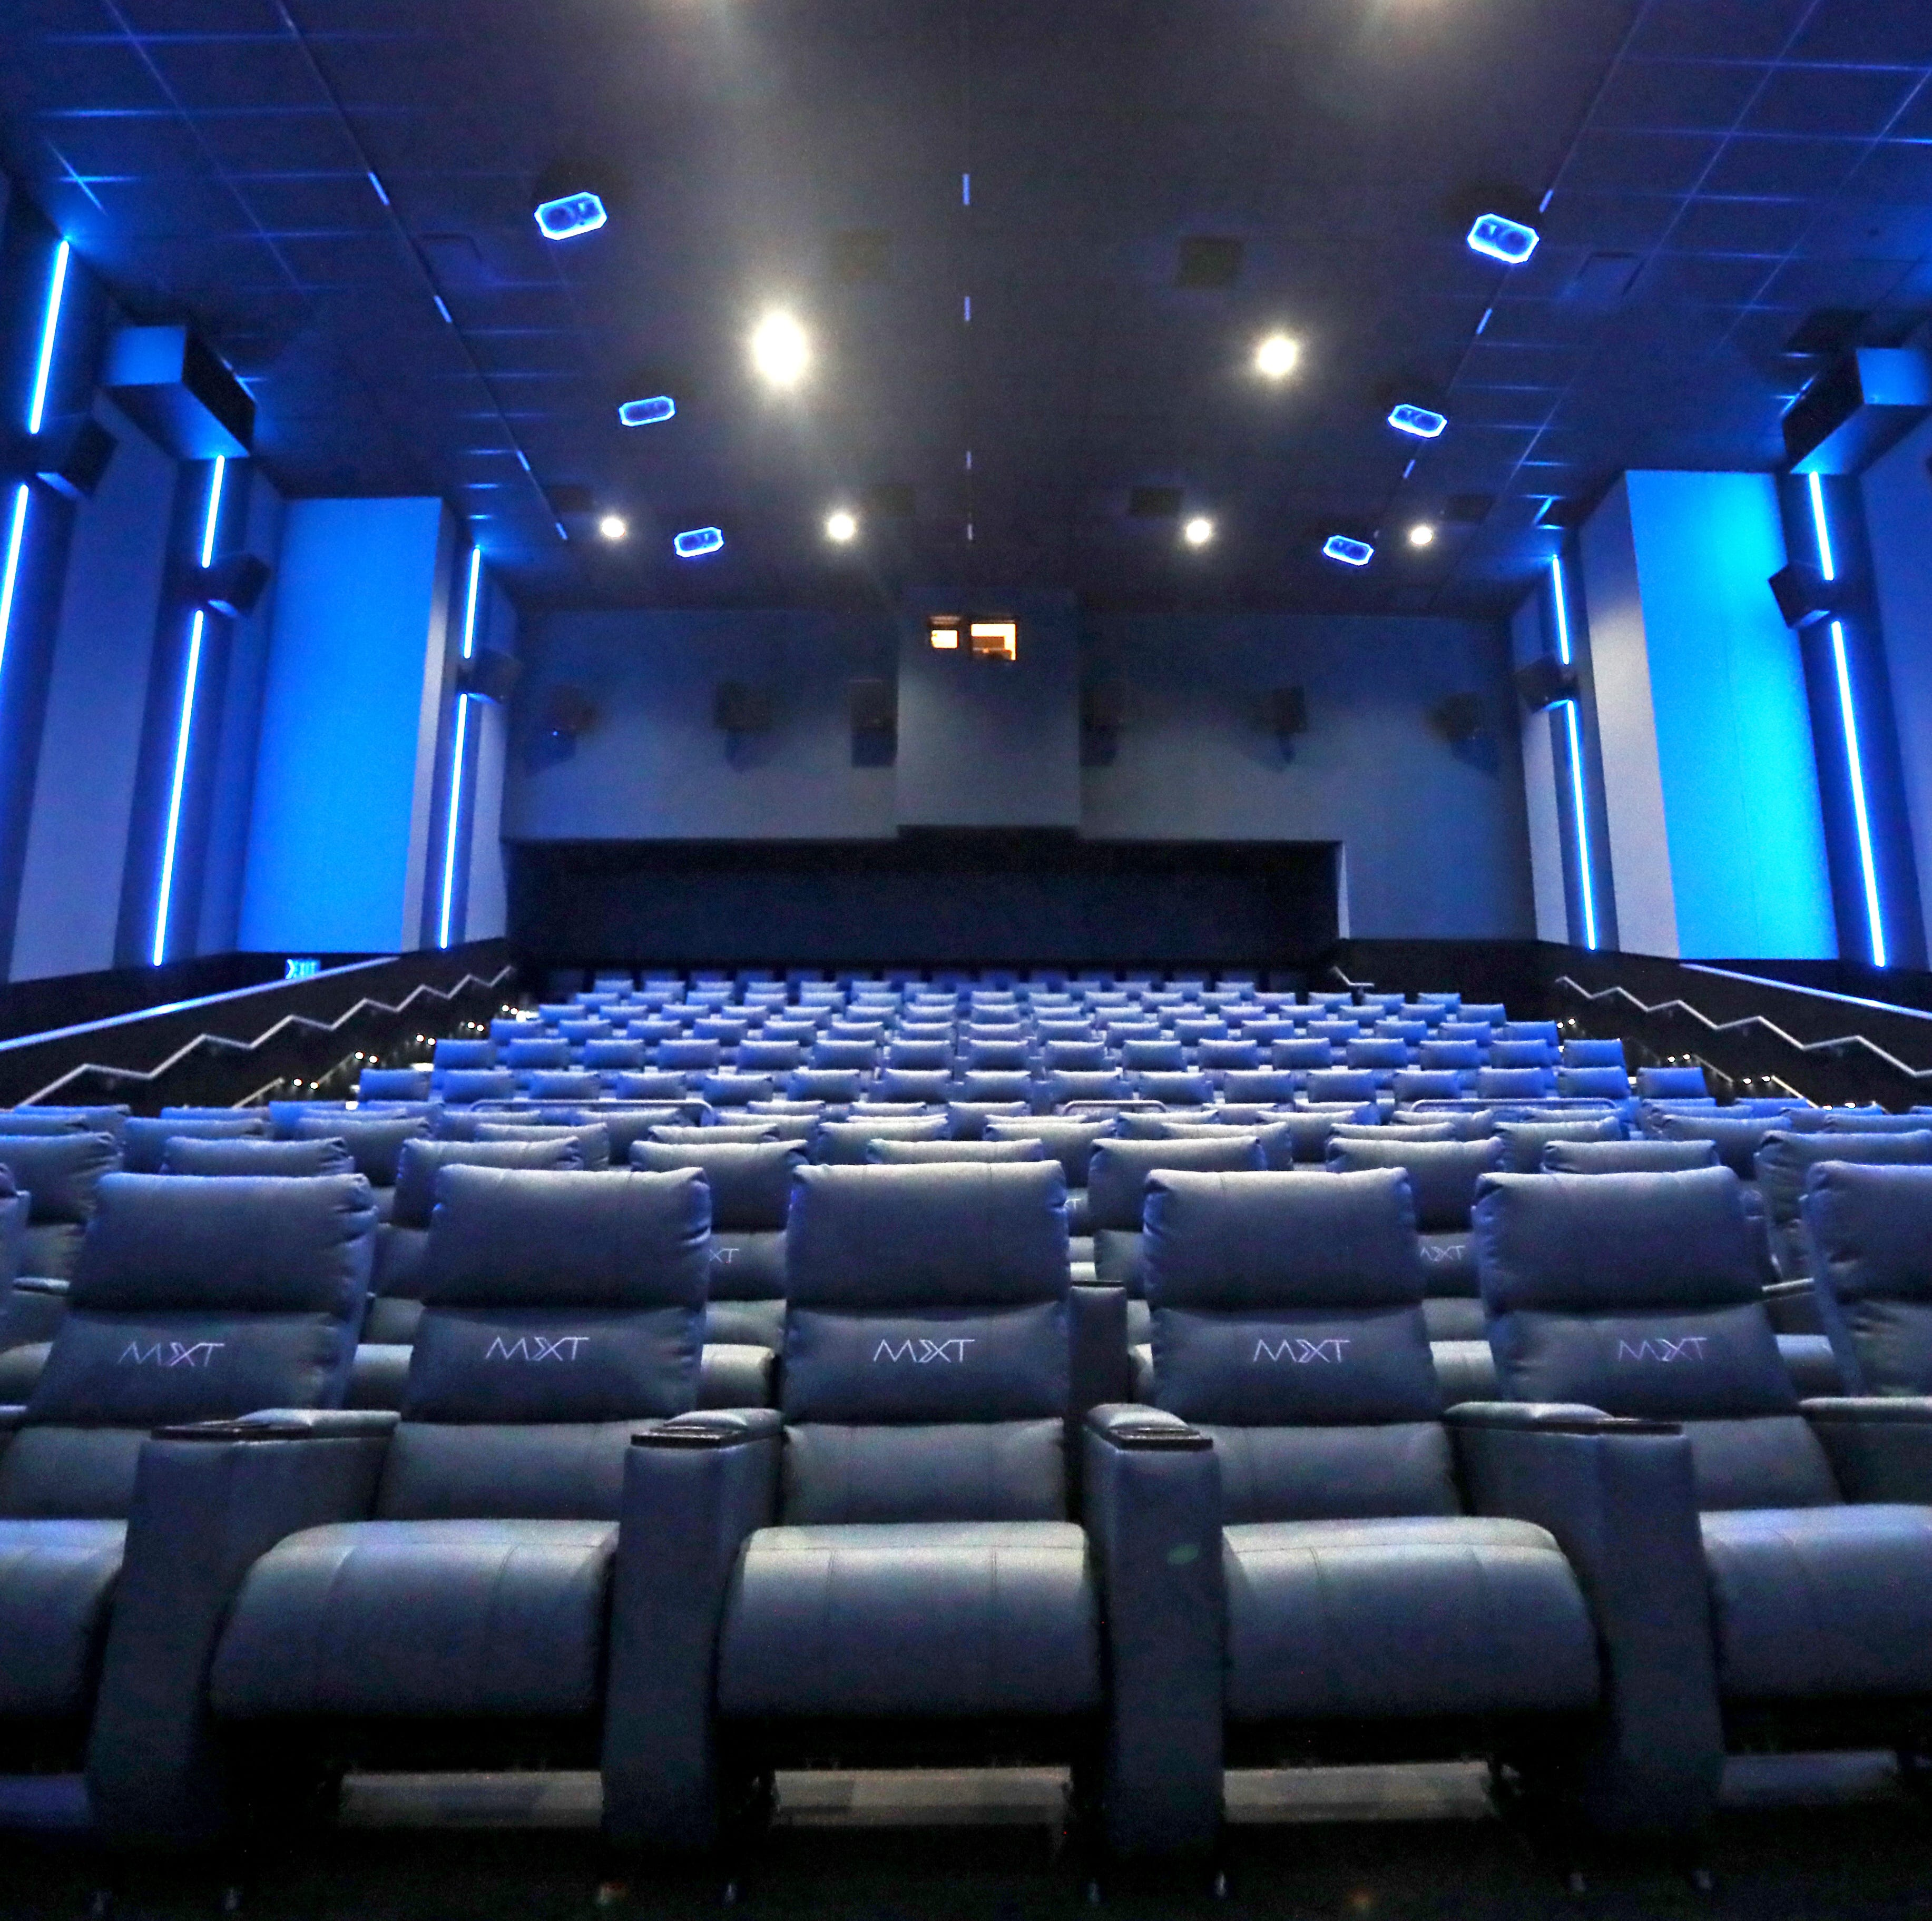 Malco is adding an MXT 'Extreme' theater to its recently renovated Collierville cinema